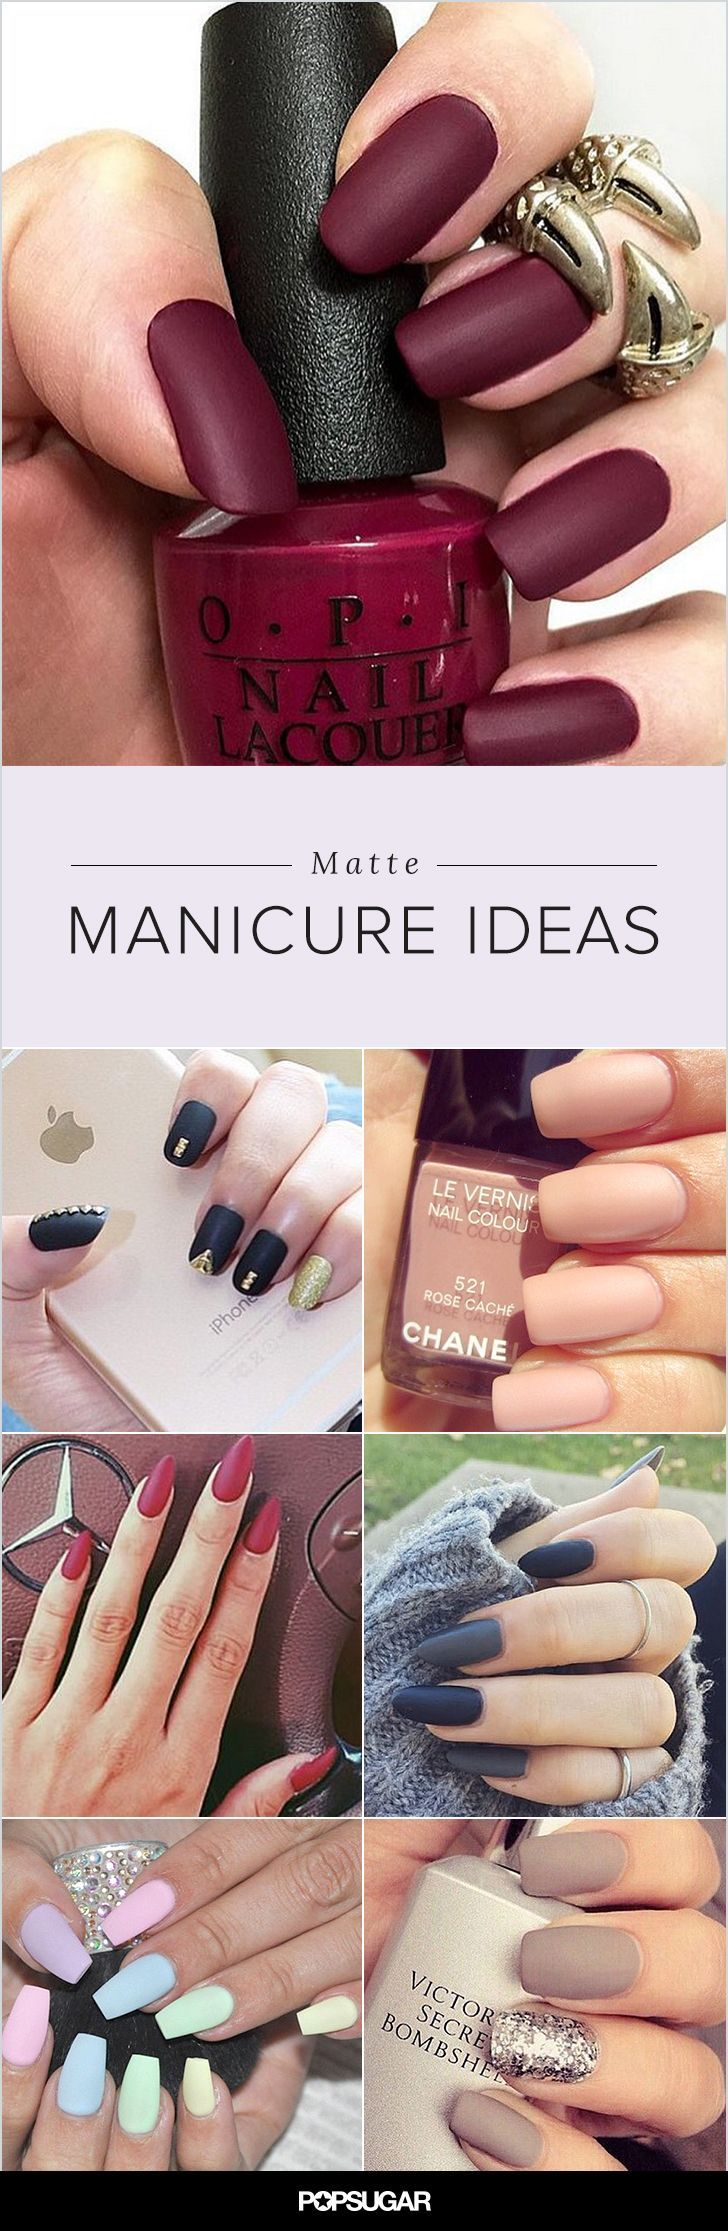 While you may have thought matte manicures hit their peak in 2010, the nail pros of Instagram are proving otherwise. Patterns, accents, and different nail shapes prove that this fun lacquer finish is anything but flat. Get inspired by these magnificent manicures, and then learn how to make your own matte lacquer. Glossy nails are so last season!